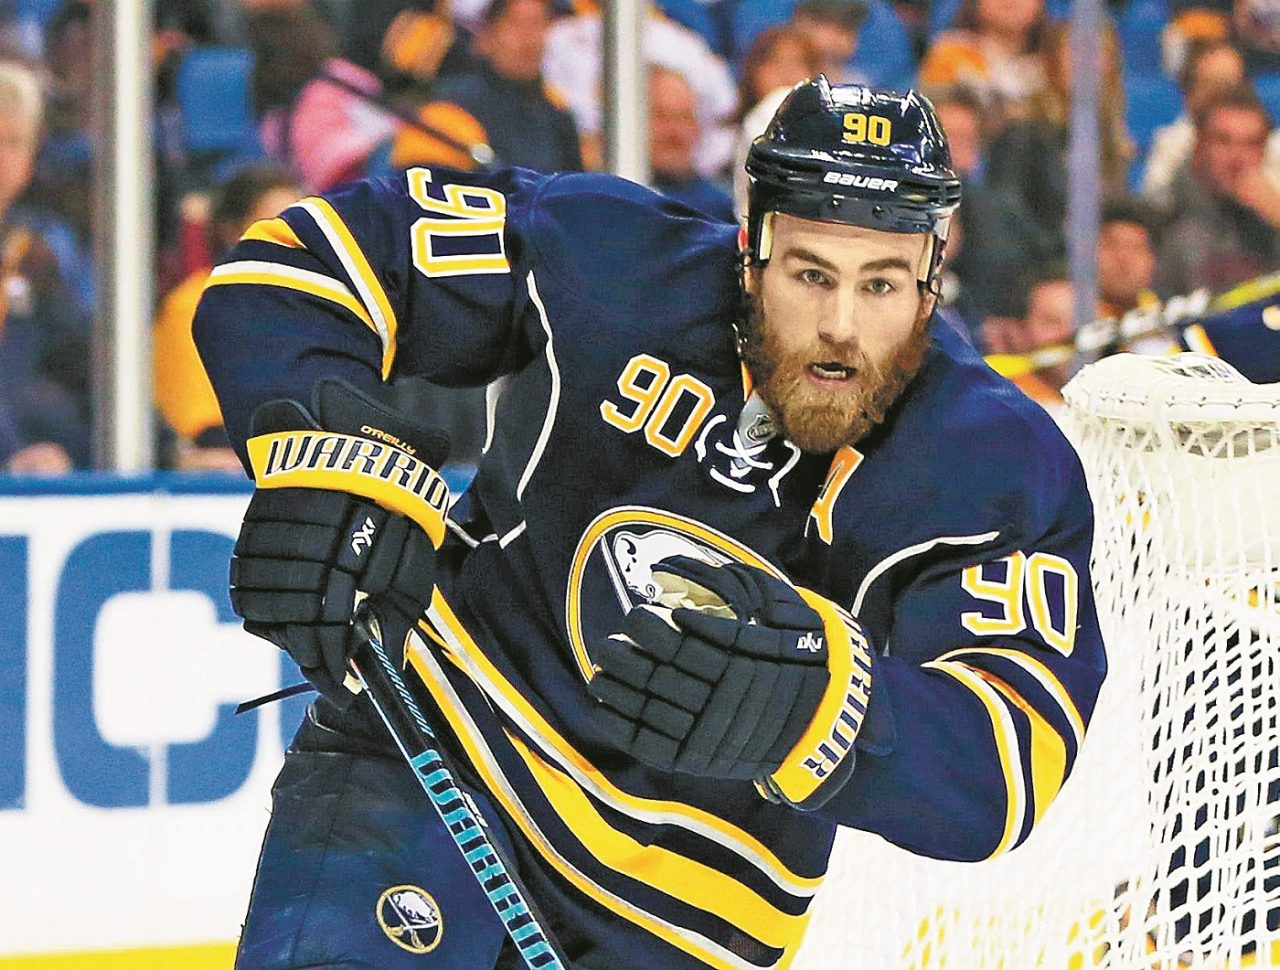 NHL Awards: Sabres' Ryan O'Reilly could take home second Lady Byng